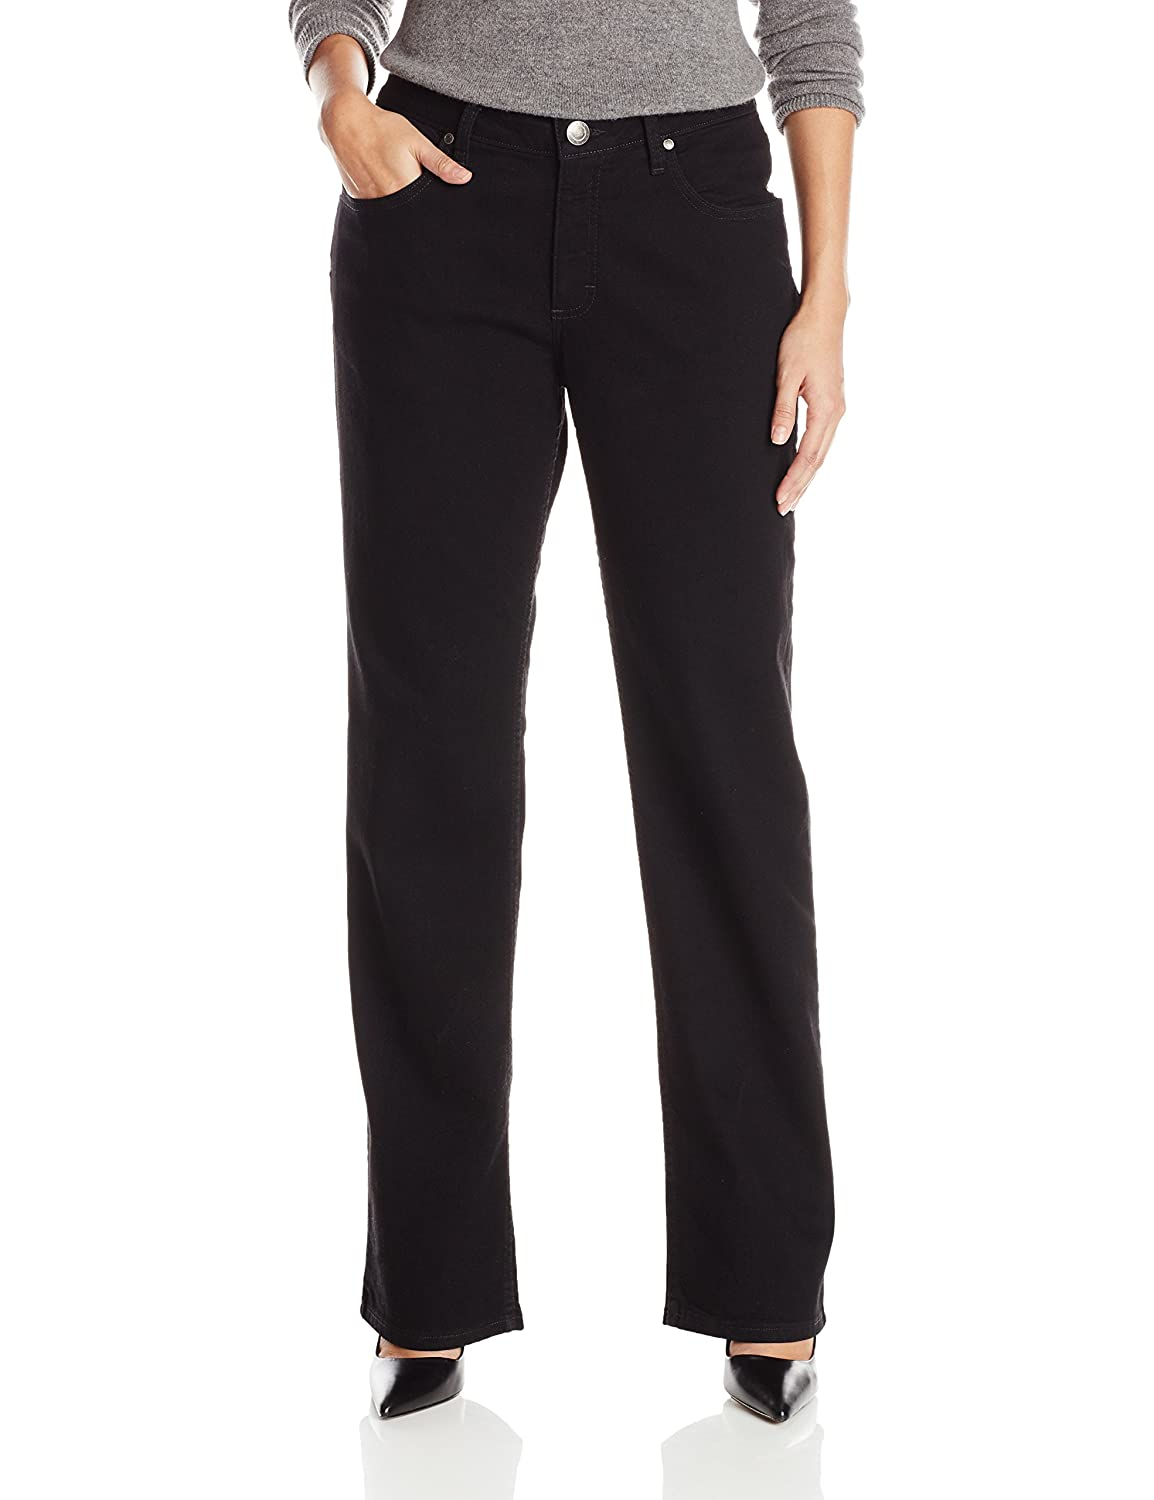 bab92098621 Riders by Lee Indigo Women s Relaxed Fit Straight Leg Jean at Amazon  Women s Jeans store